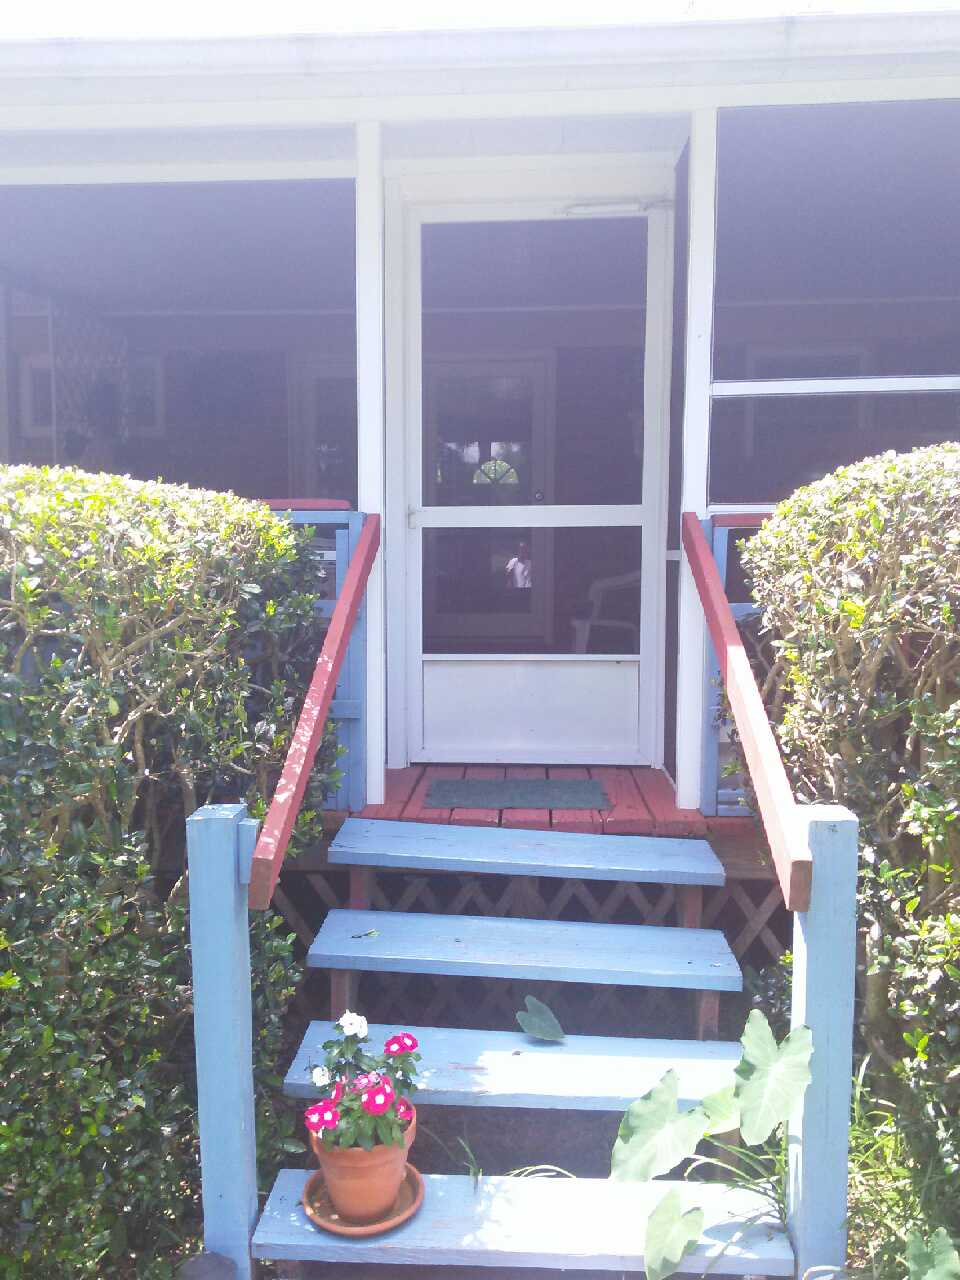 eufaula chat There are 8 pet friendly hotels in eufaula, al need help deciding where to stay  view pictures of each dog friendly hotel, bed & breakfast, vacation rental, and.